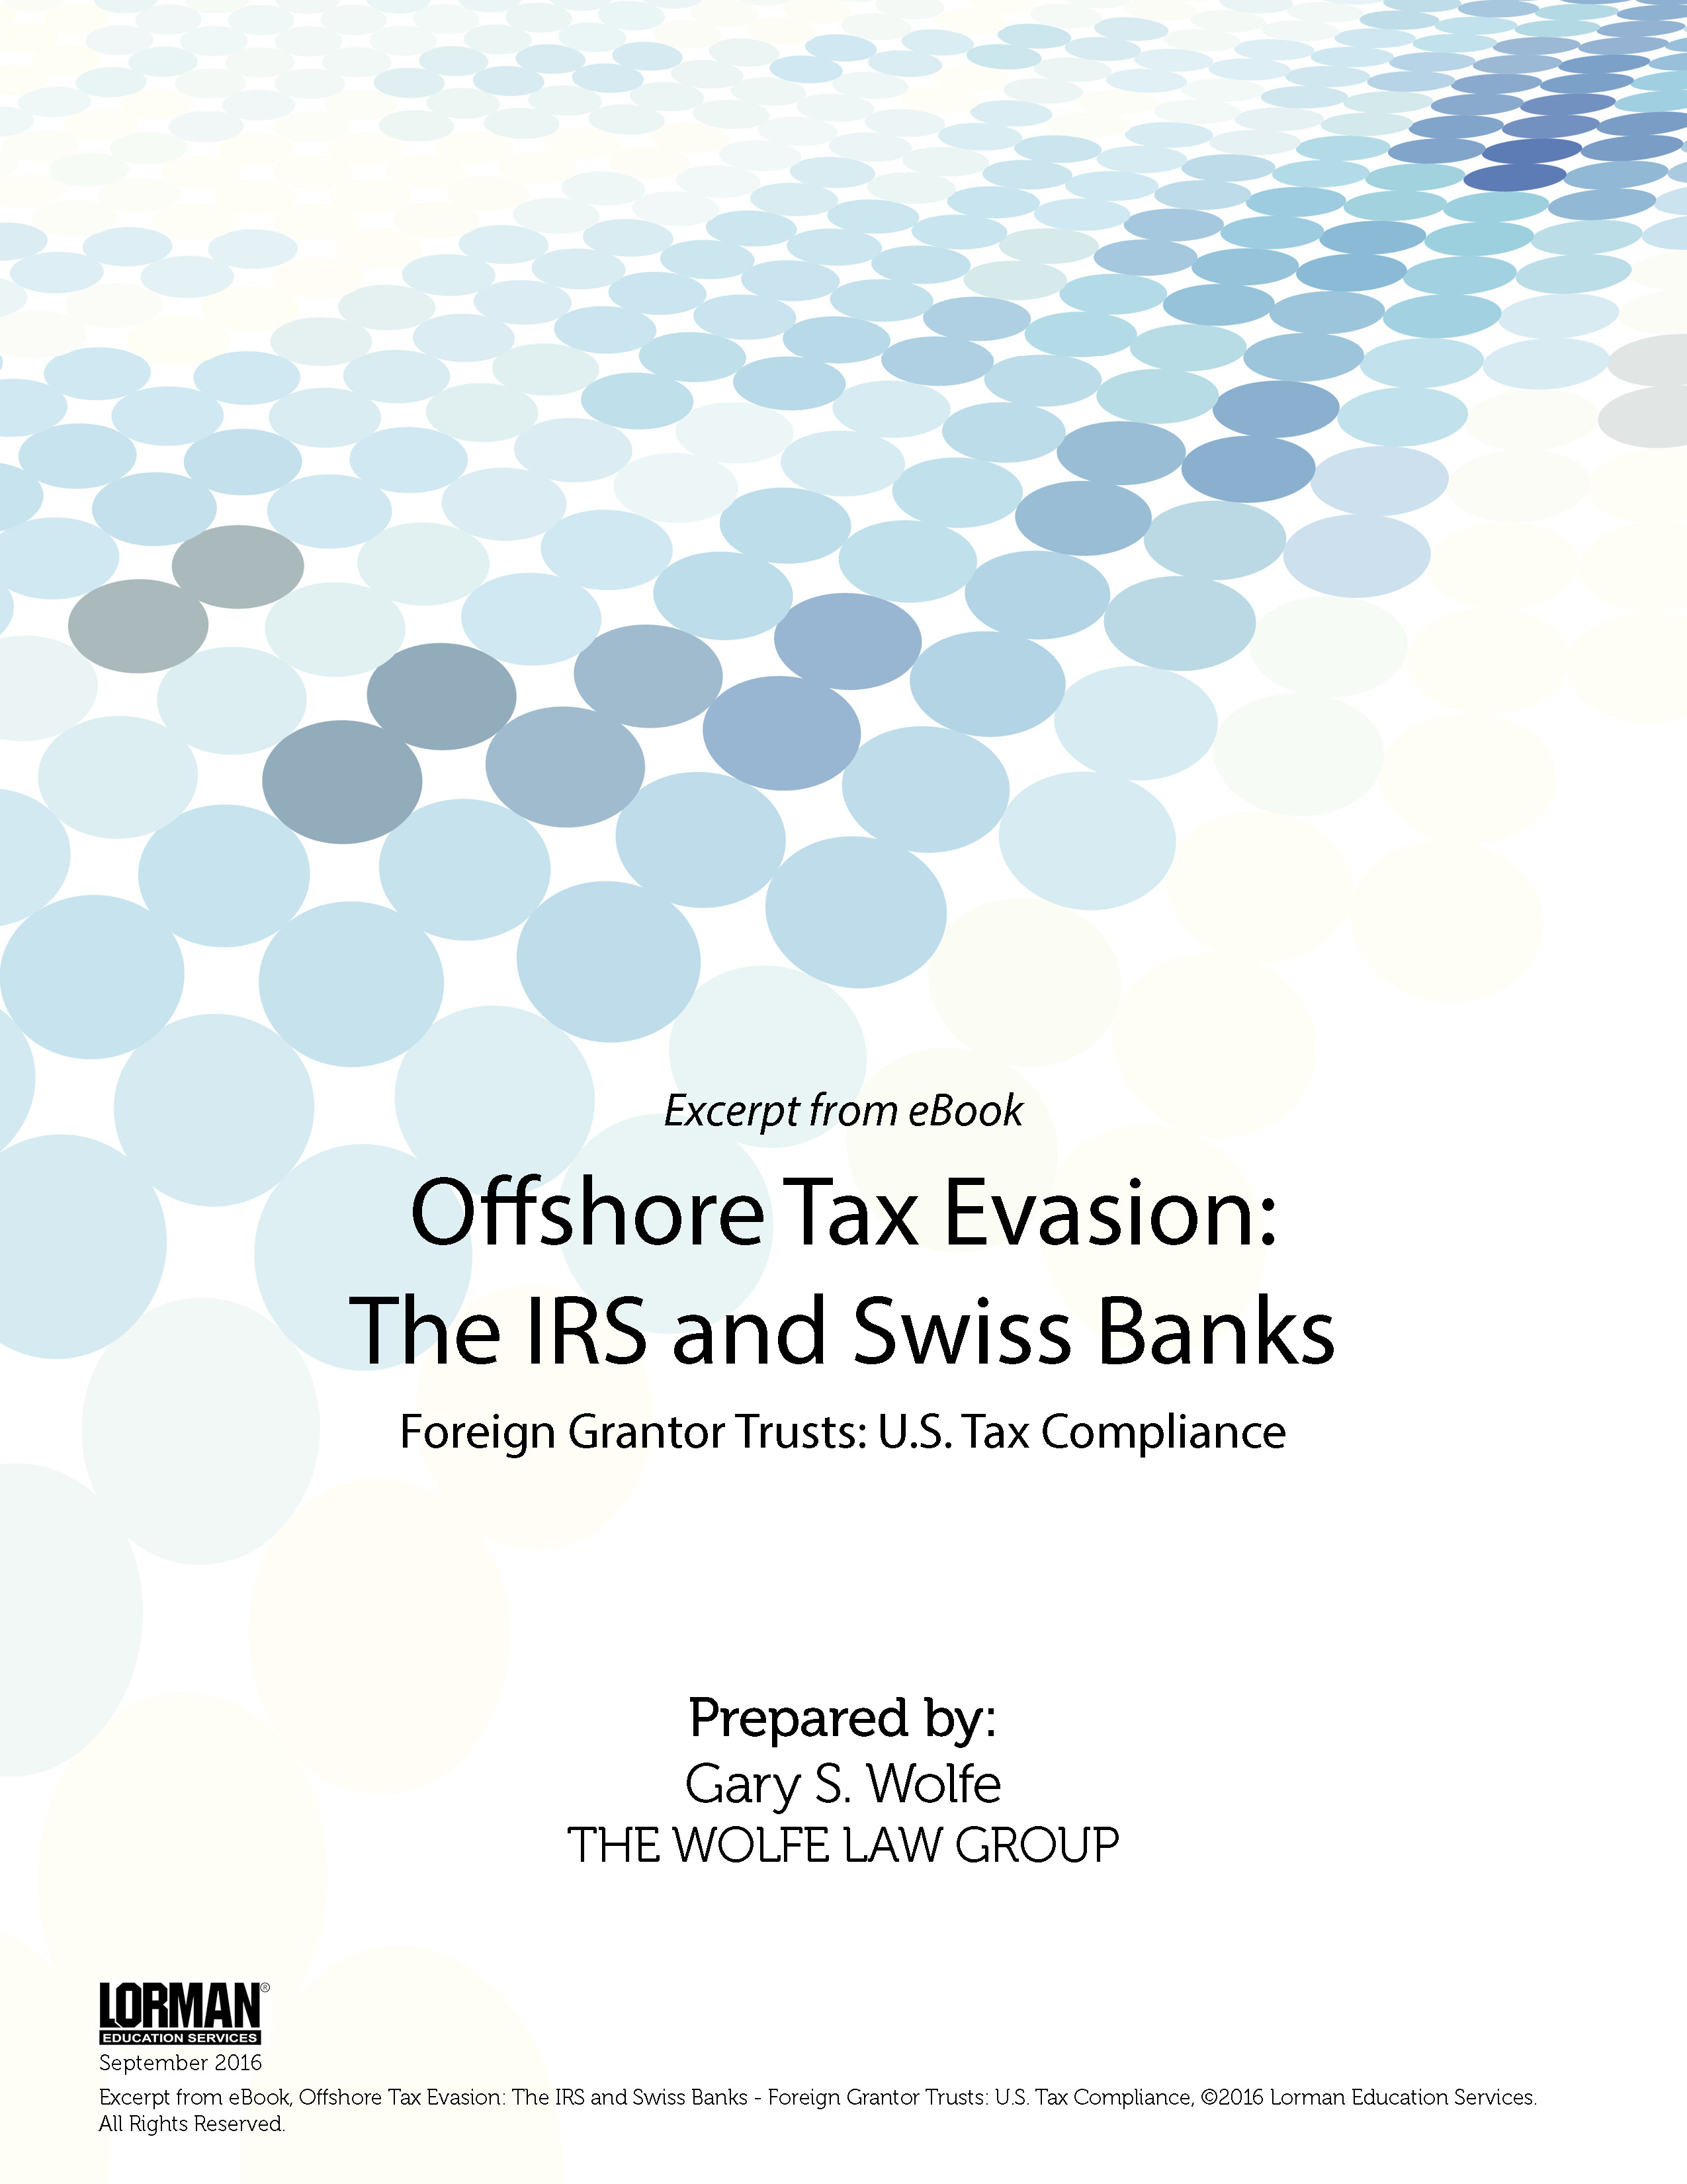 Offshore Tax Evasion: The IRS and Swiss Banks - Foreign Grantor Trusts: U.S. Tax Compliance